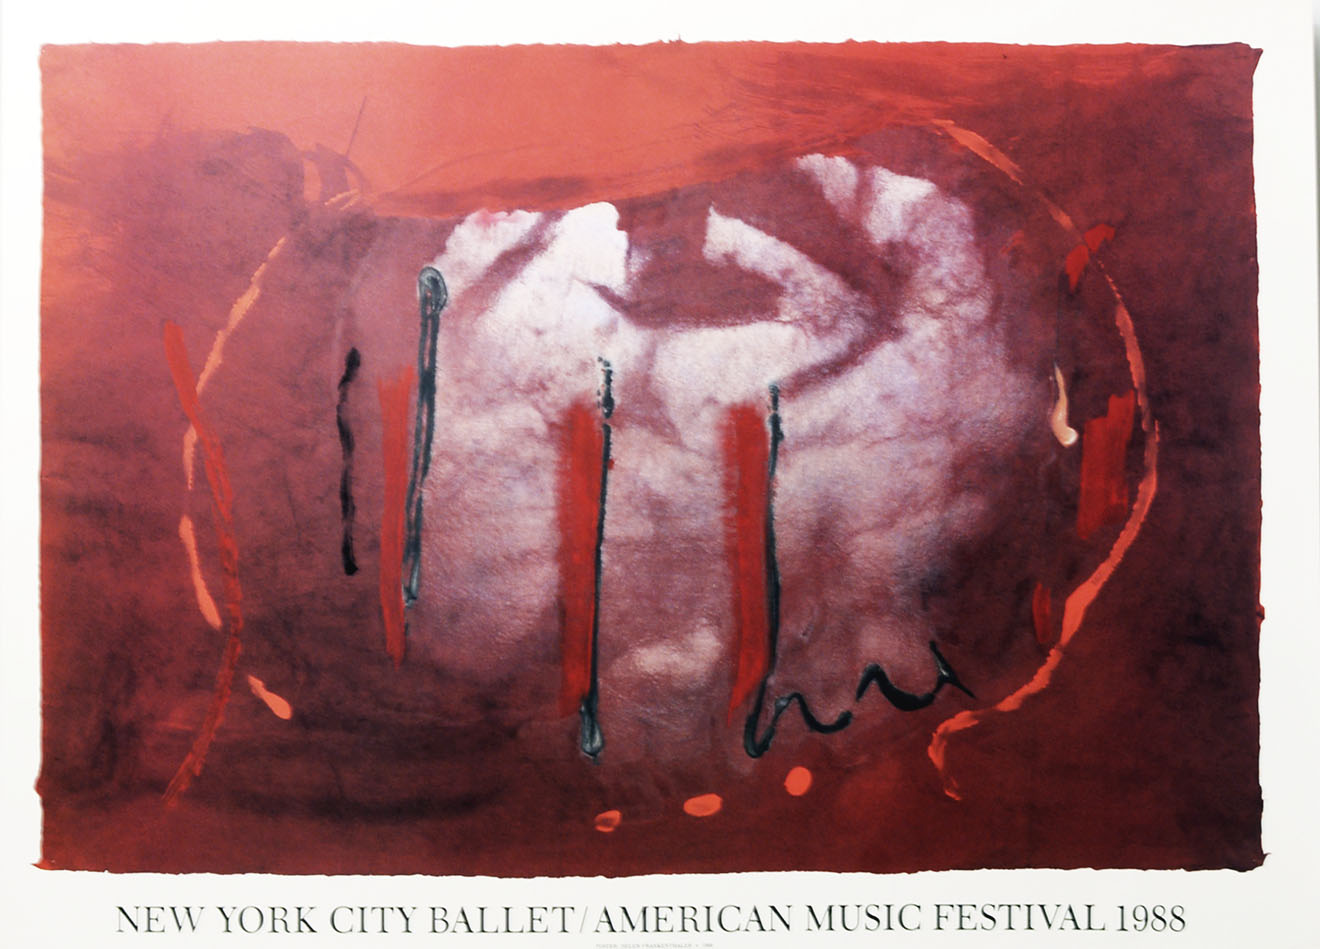 New York City Ballet 1988 by Helen Frankenthaler